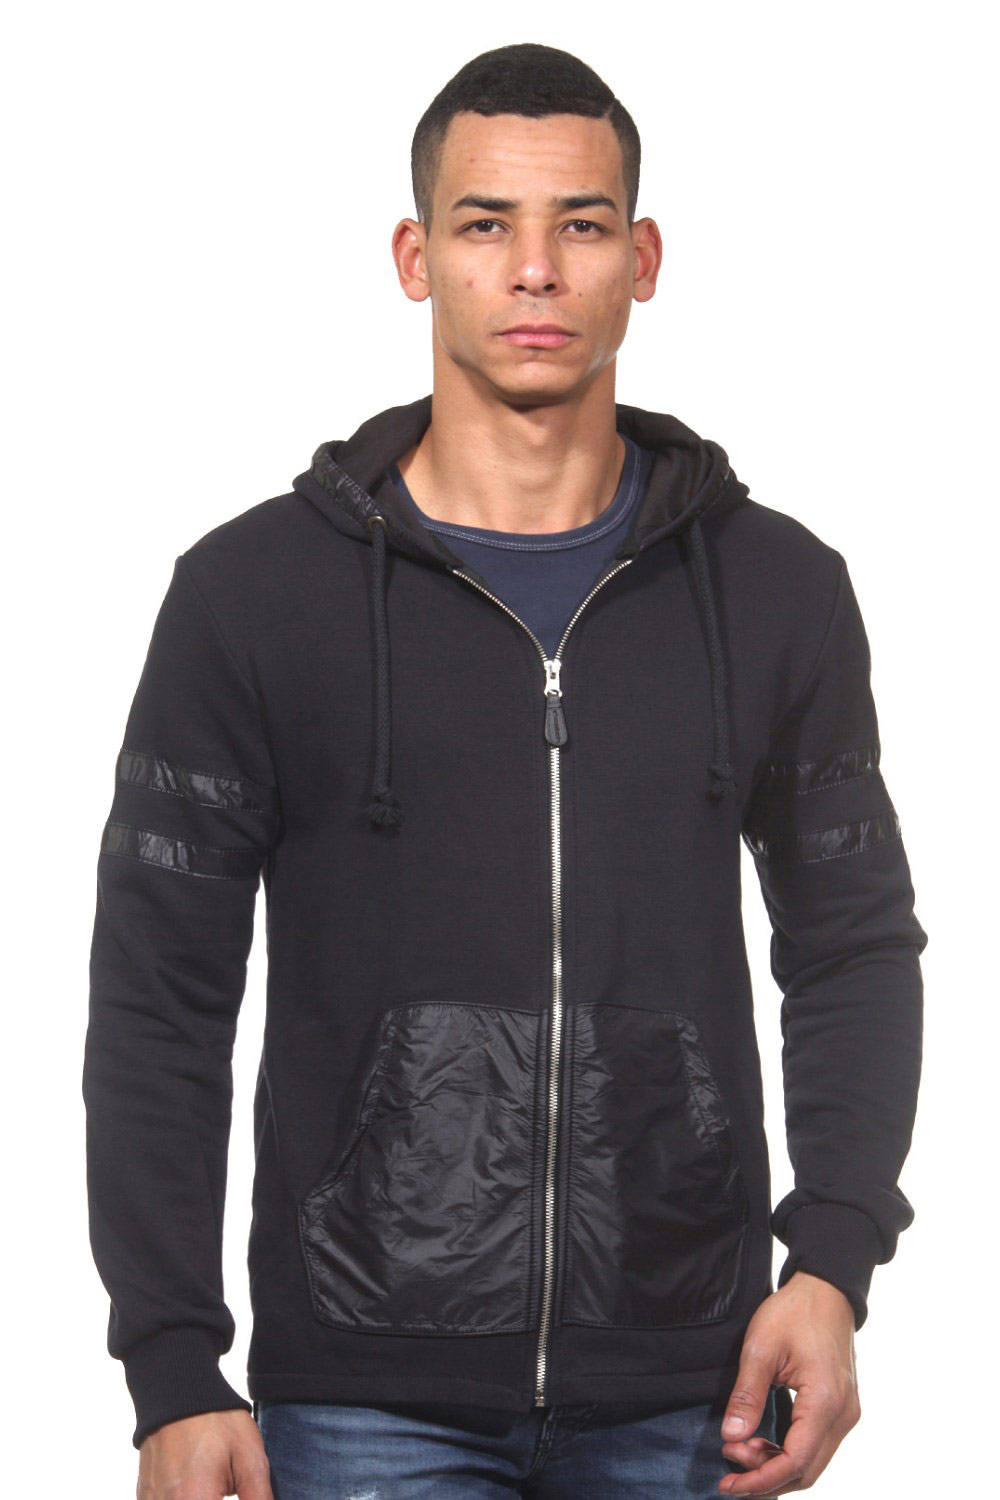 CATCH hood sweat jacket slim fit at oboy.com